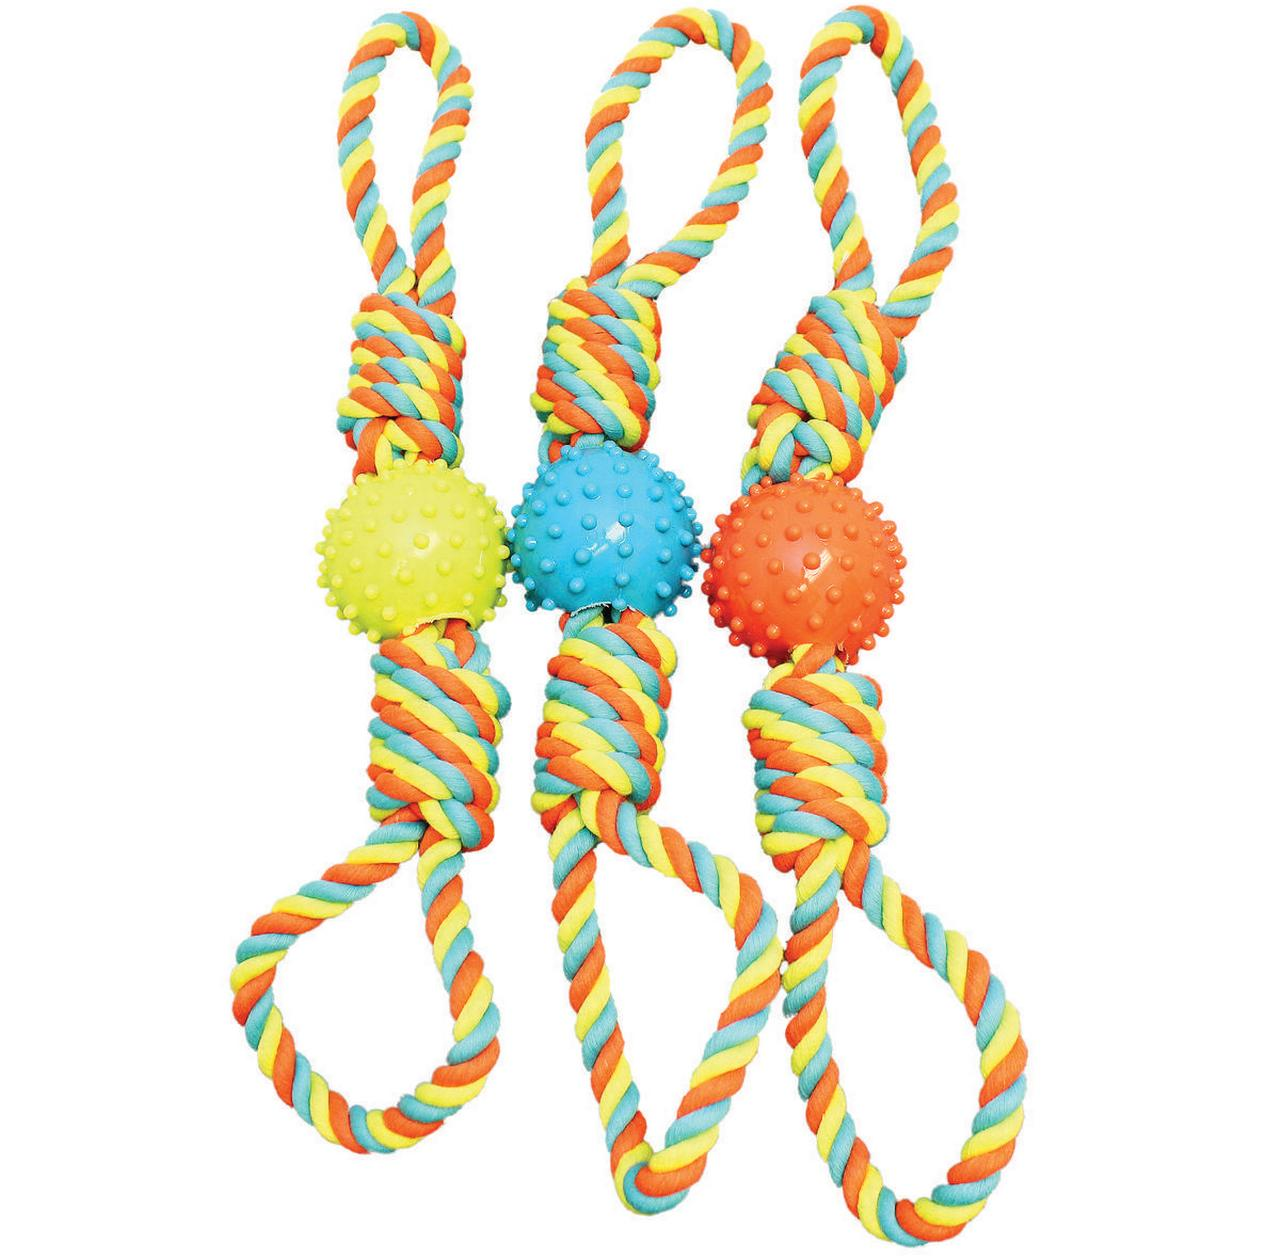 Boss Pet WB15533 Pet Toys, Rope Bone Ball